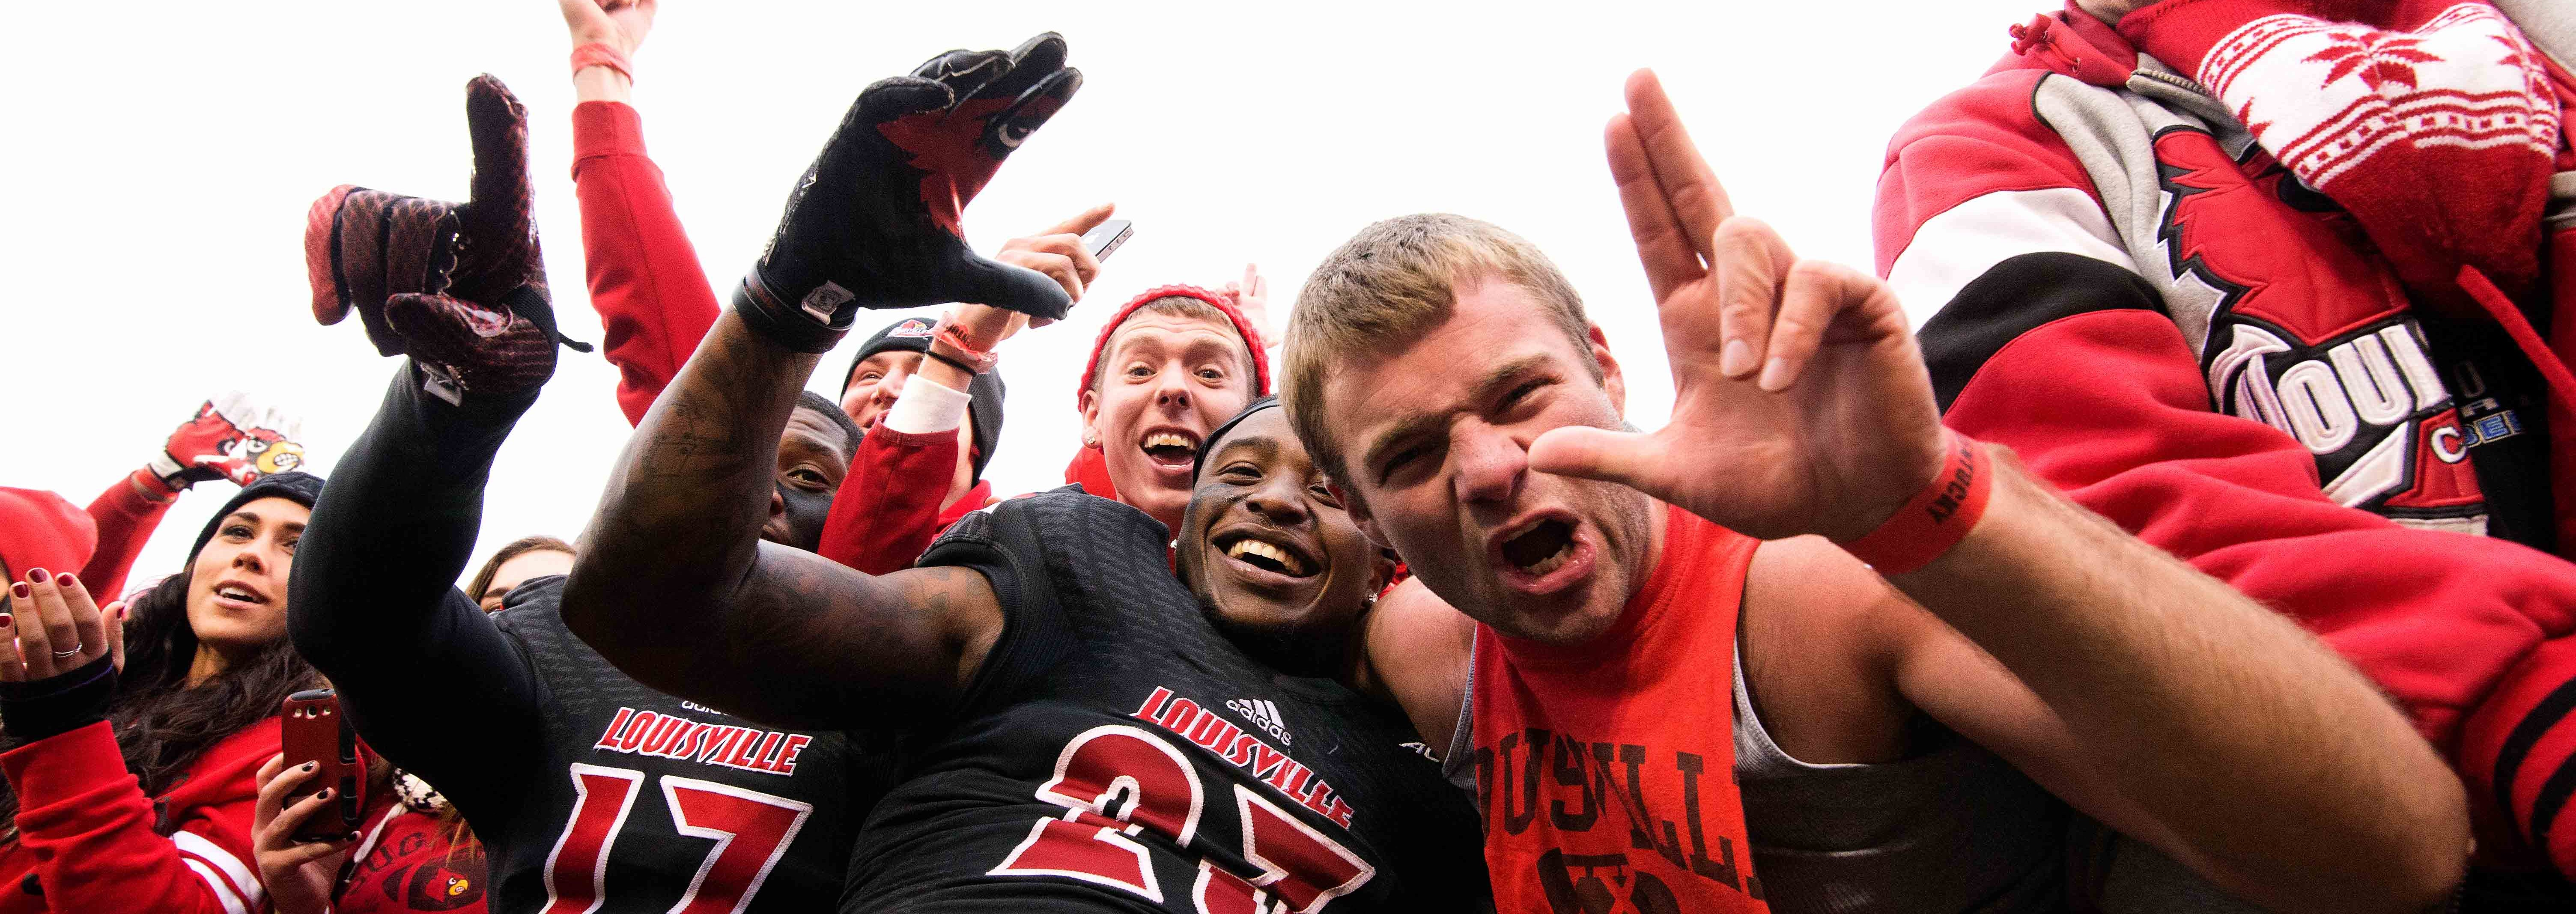 Brandon Radcliff & James Quick Celebrating 2014 Governor's Cup Photo By Adam Creech Fitted